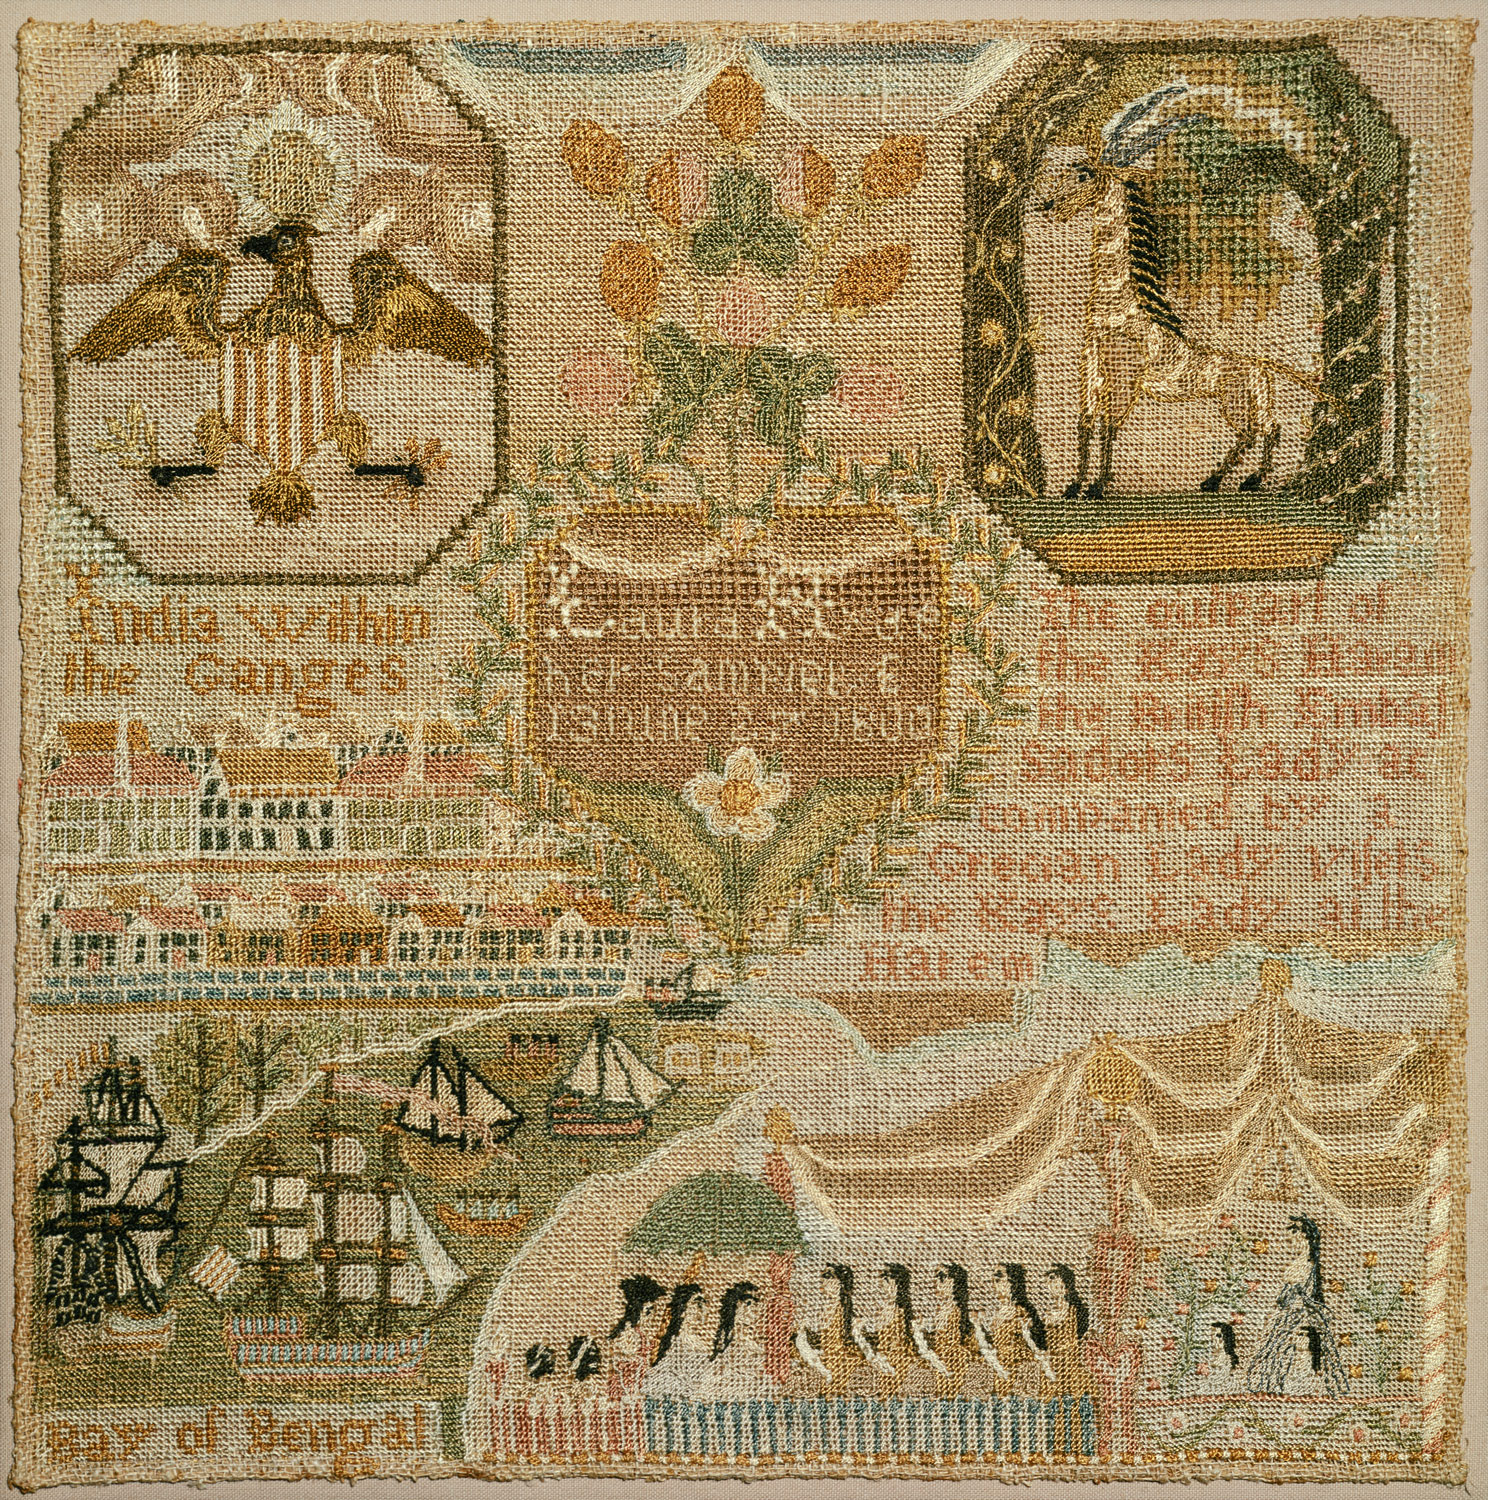 Embroidered Sampler